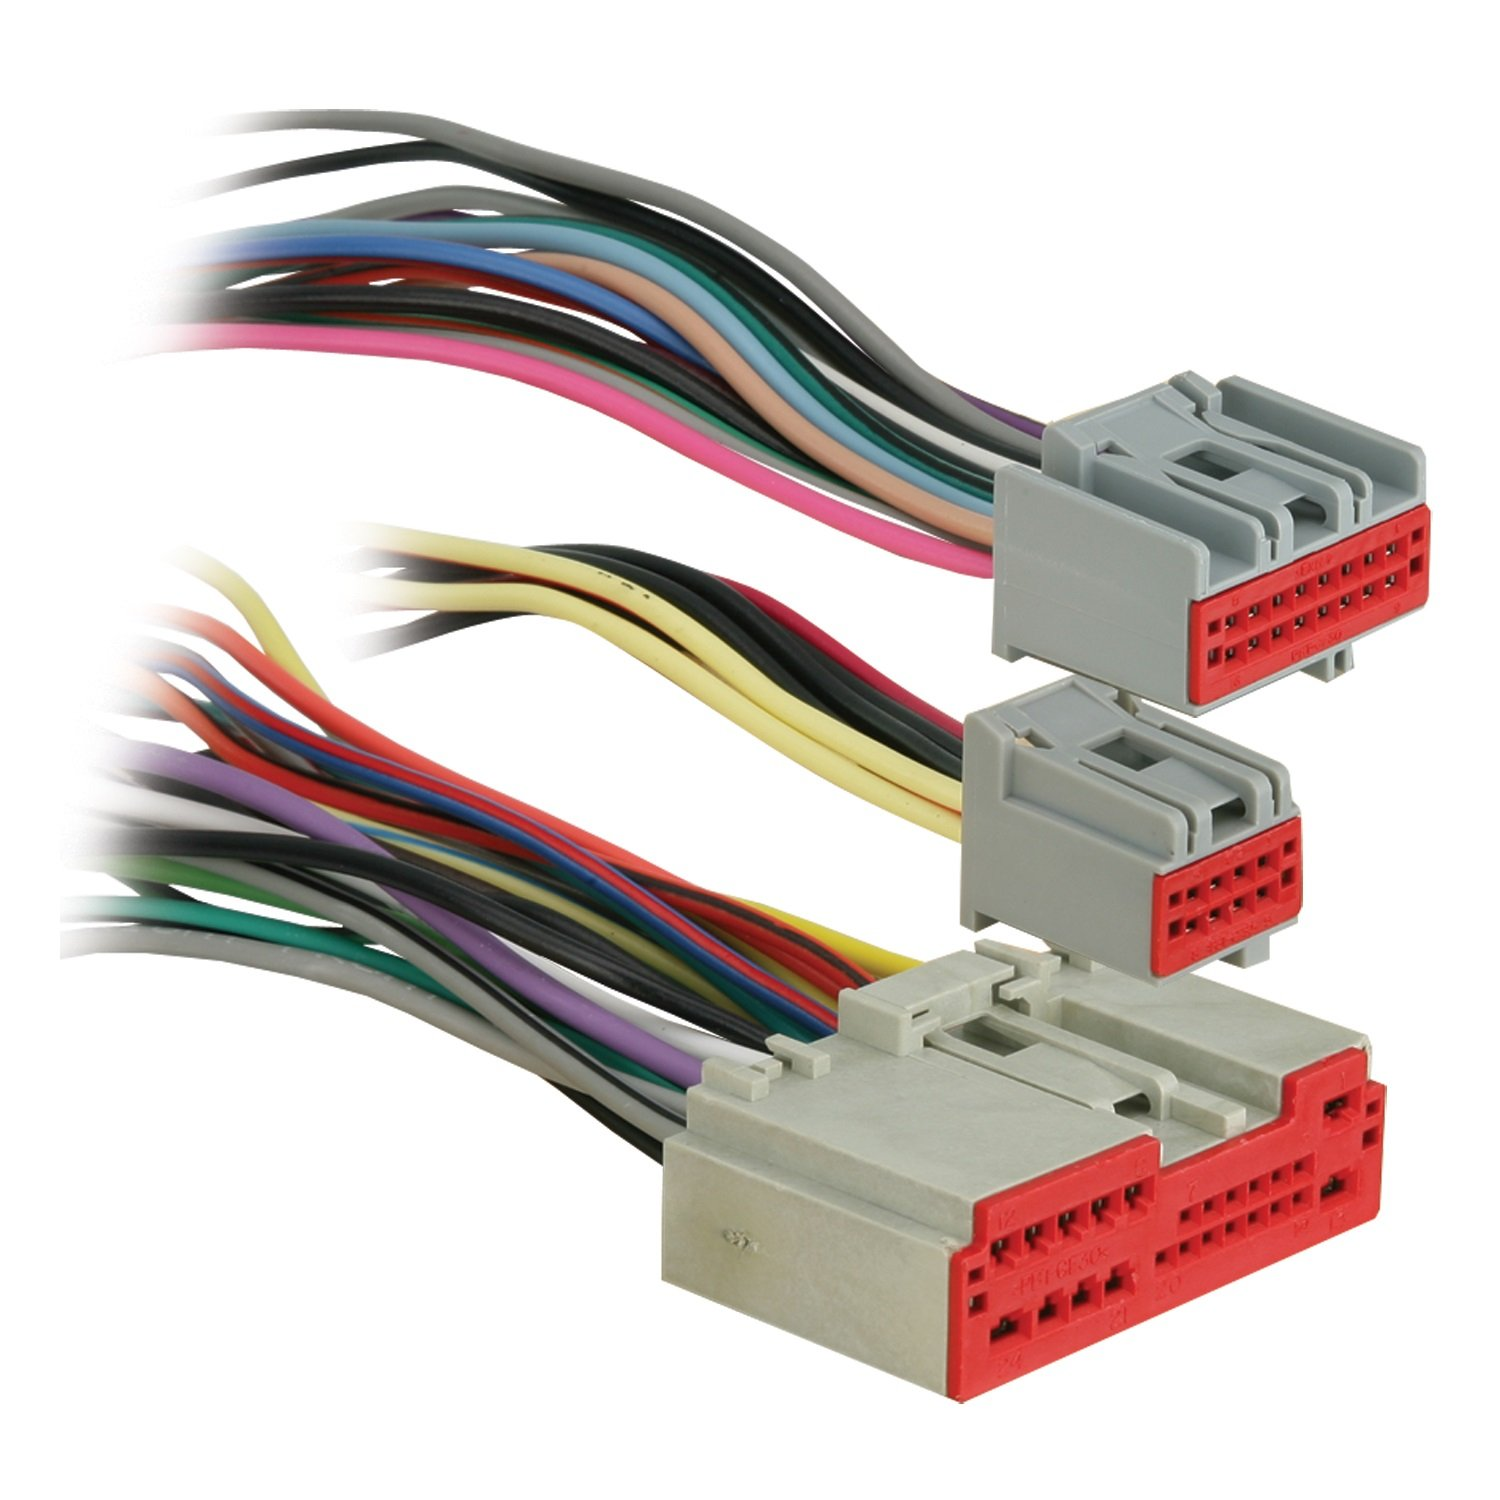 hight resolution of metra reverse wiring harness 71 5520 1 for select 2003 up ford lincoln mercury vehicles oem premium audio walmart com